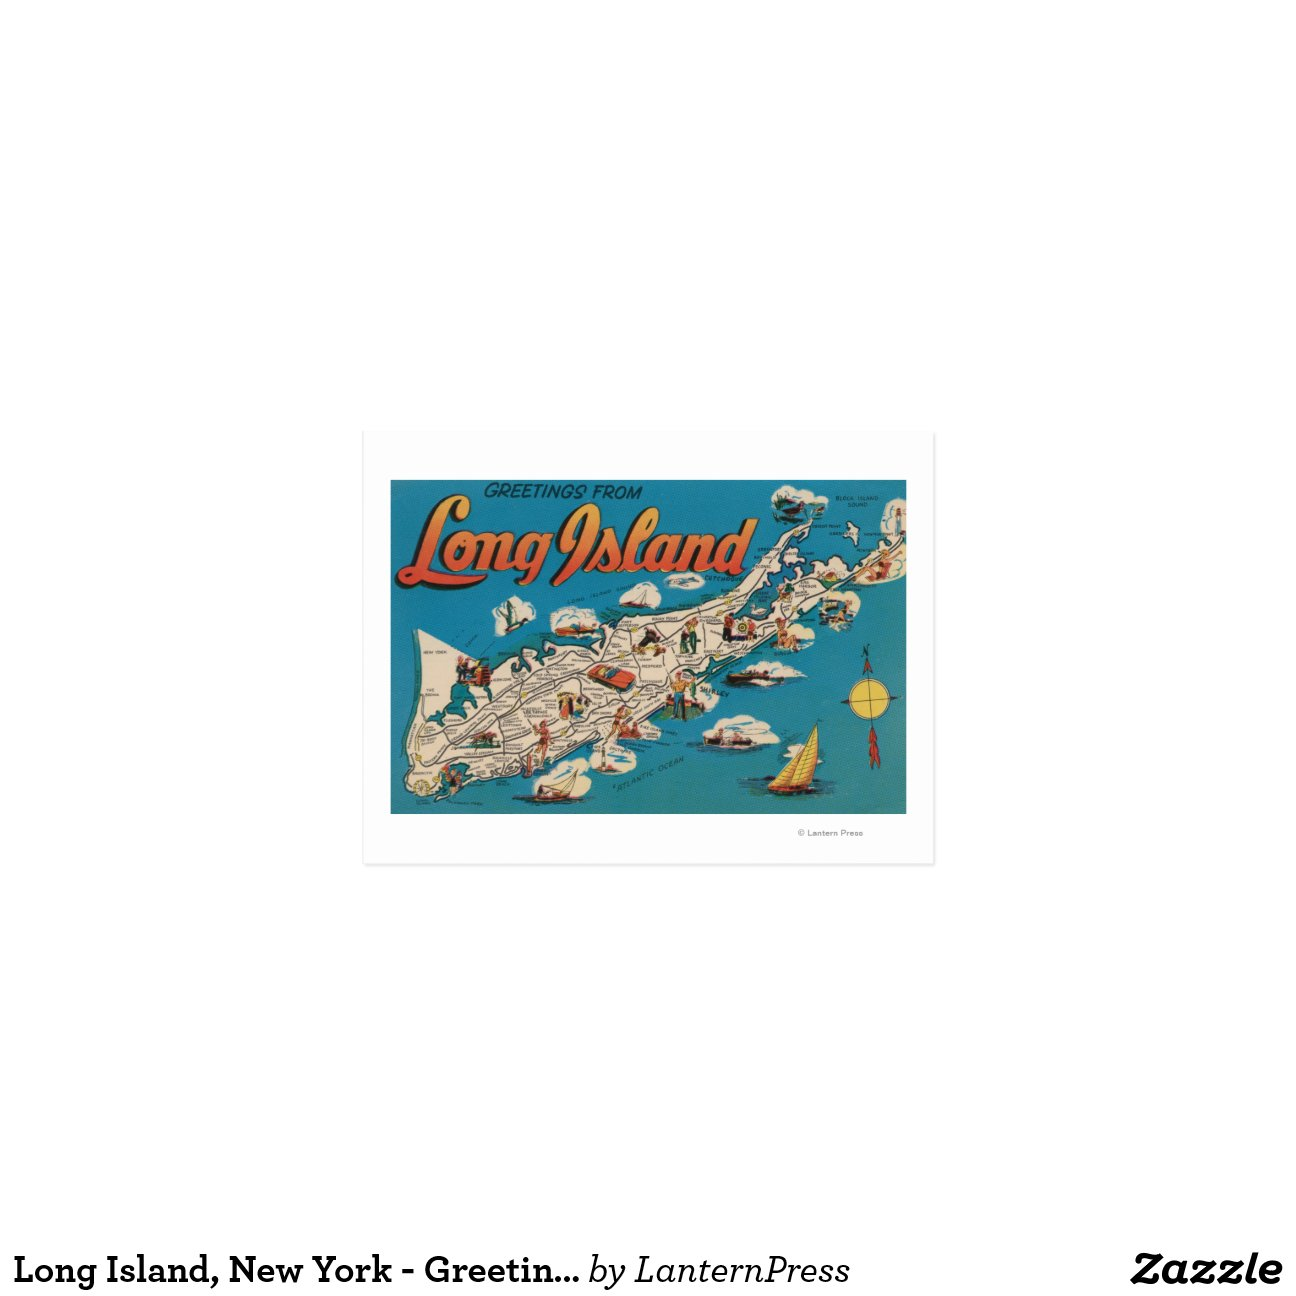 Long island new york greetings from postcard zazzle for Custom t shirts long island ny